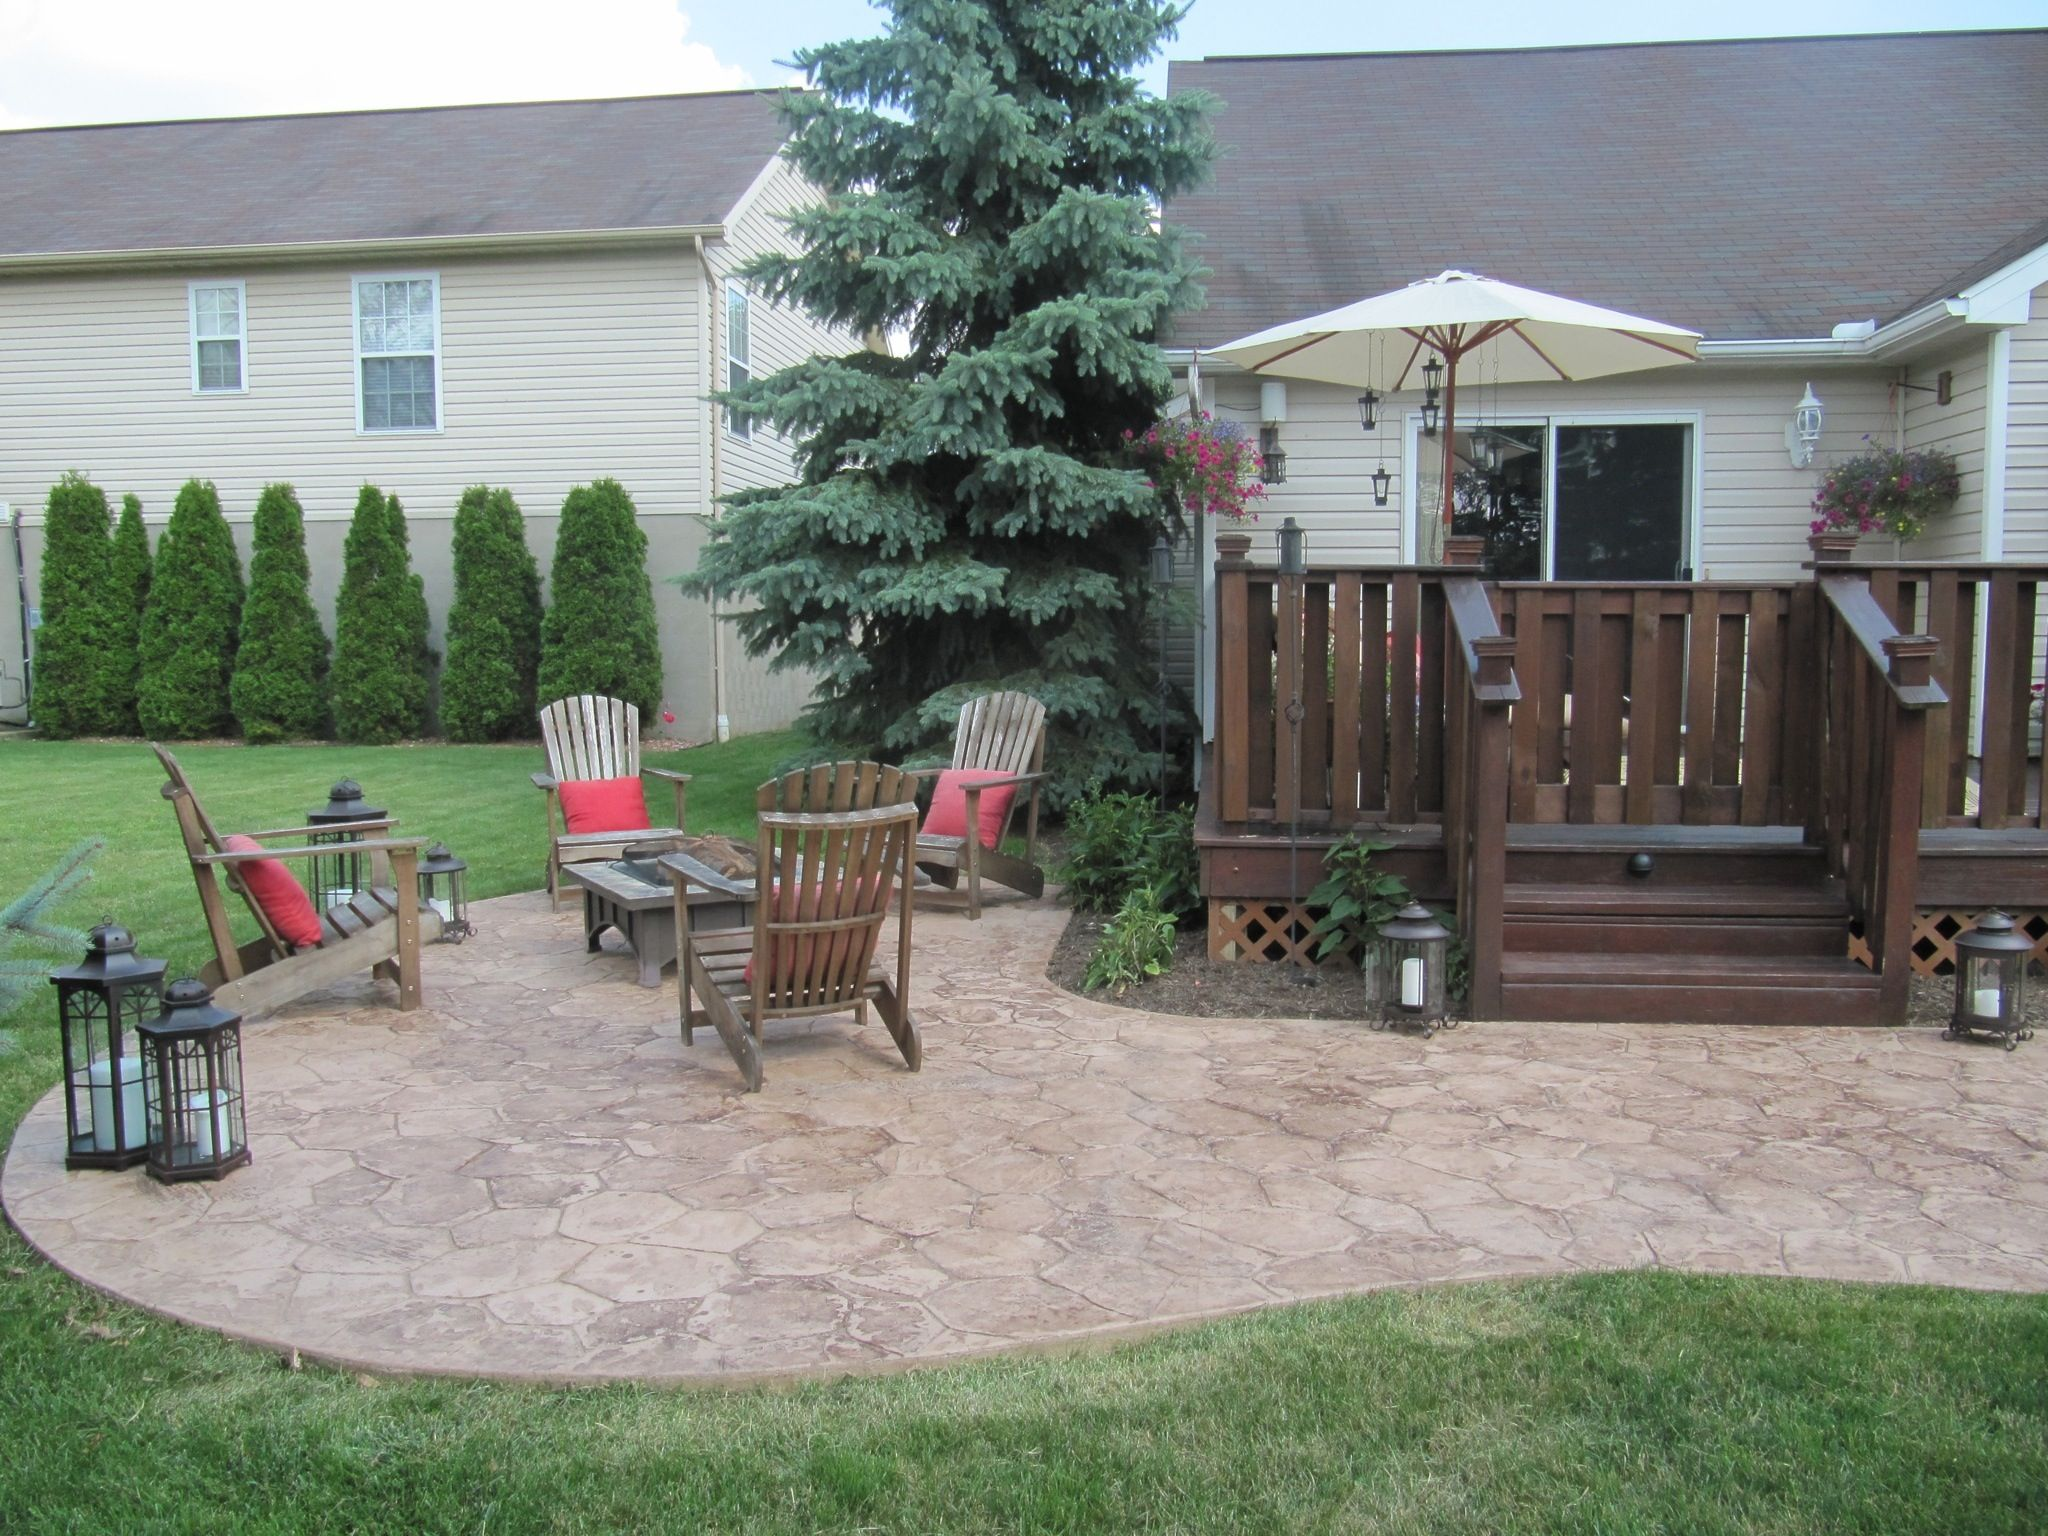 This lower patio area was designed as a kidney shape. The